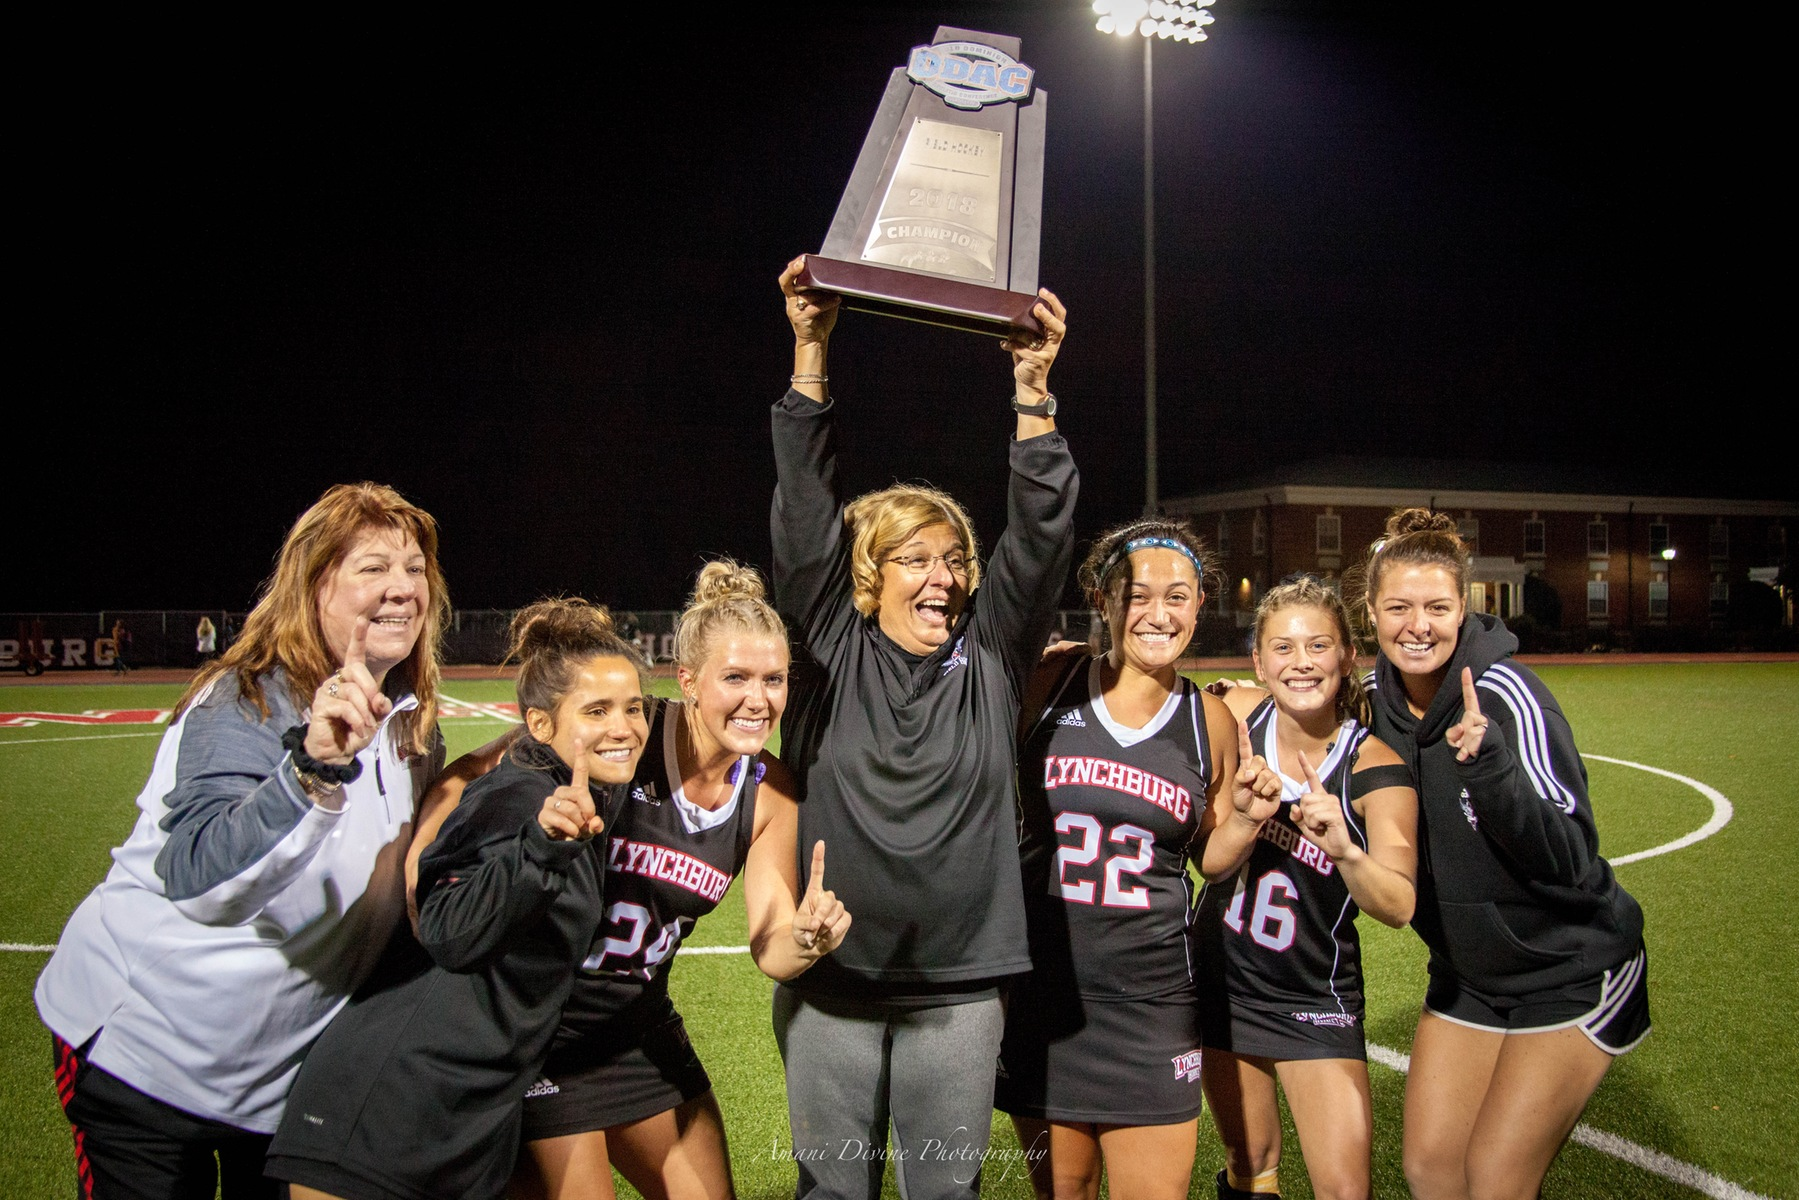 Field hockey players and coaches hoist the ODAC championship trophy